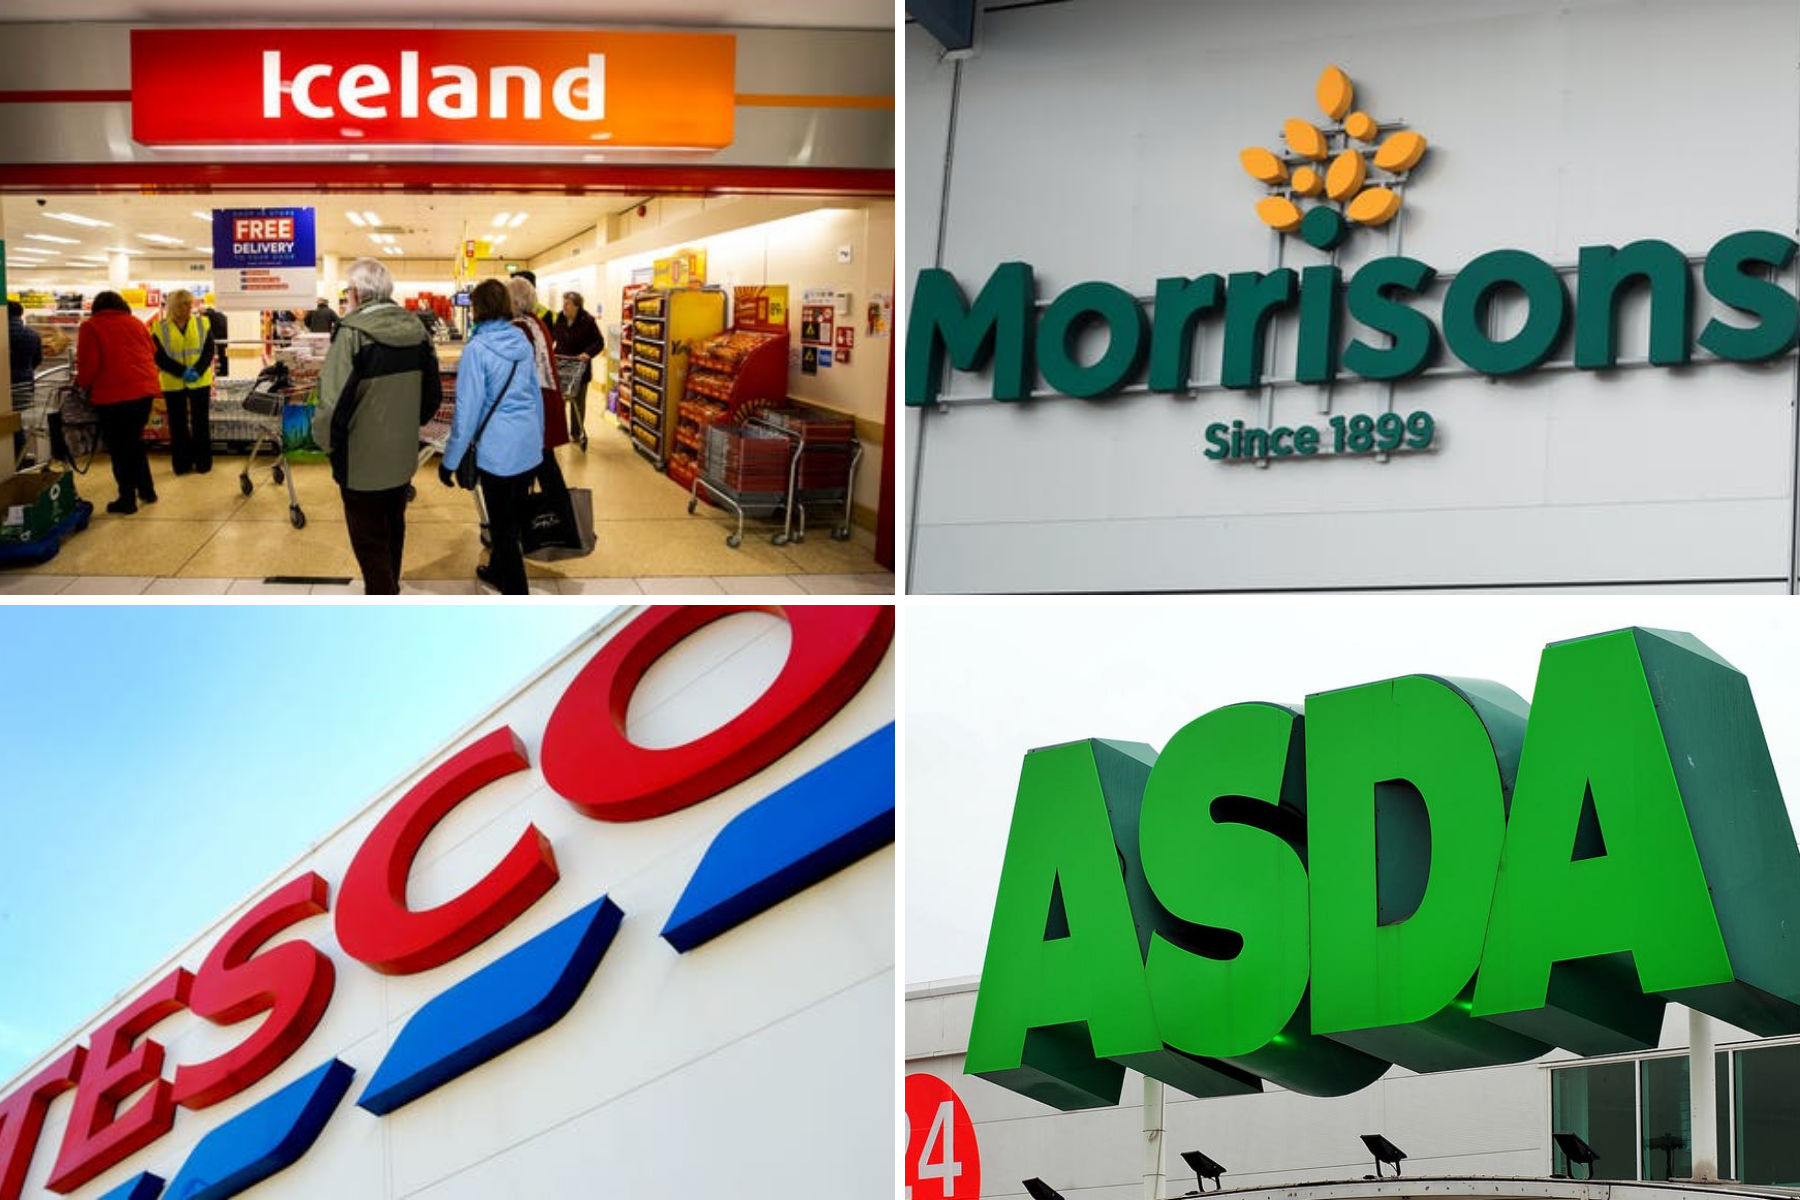 Tesco, Iceland and Morrisons supermarkets issuing product recalls